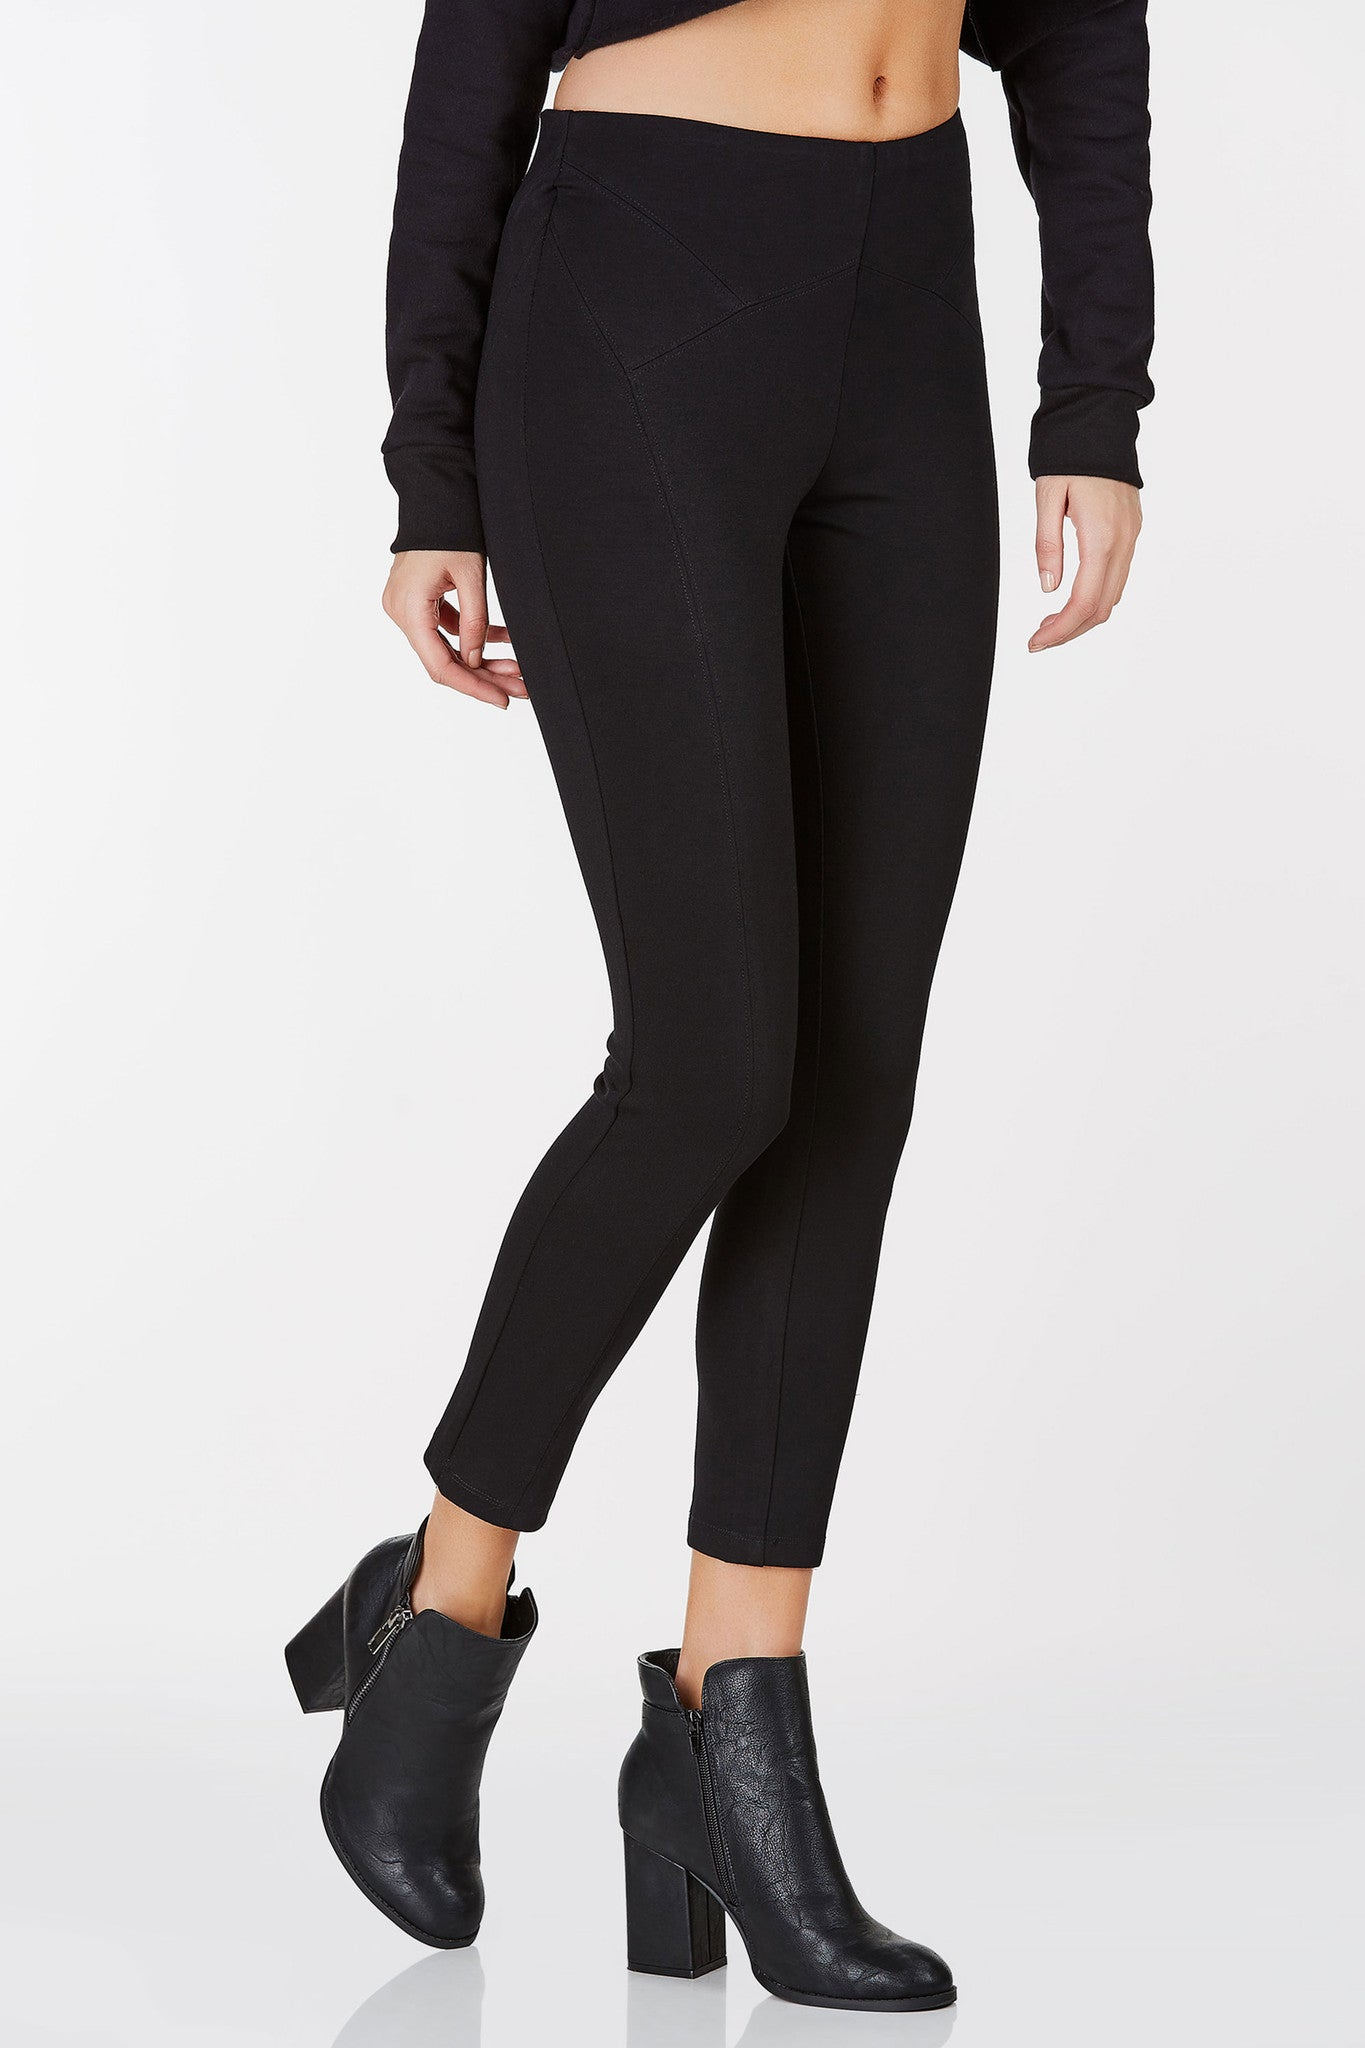 High rise pants with detailed seamwork throughout. Slim fit with back zip closure and cropped hem.